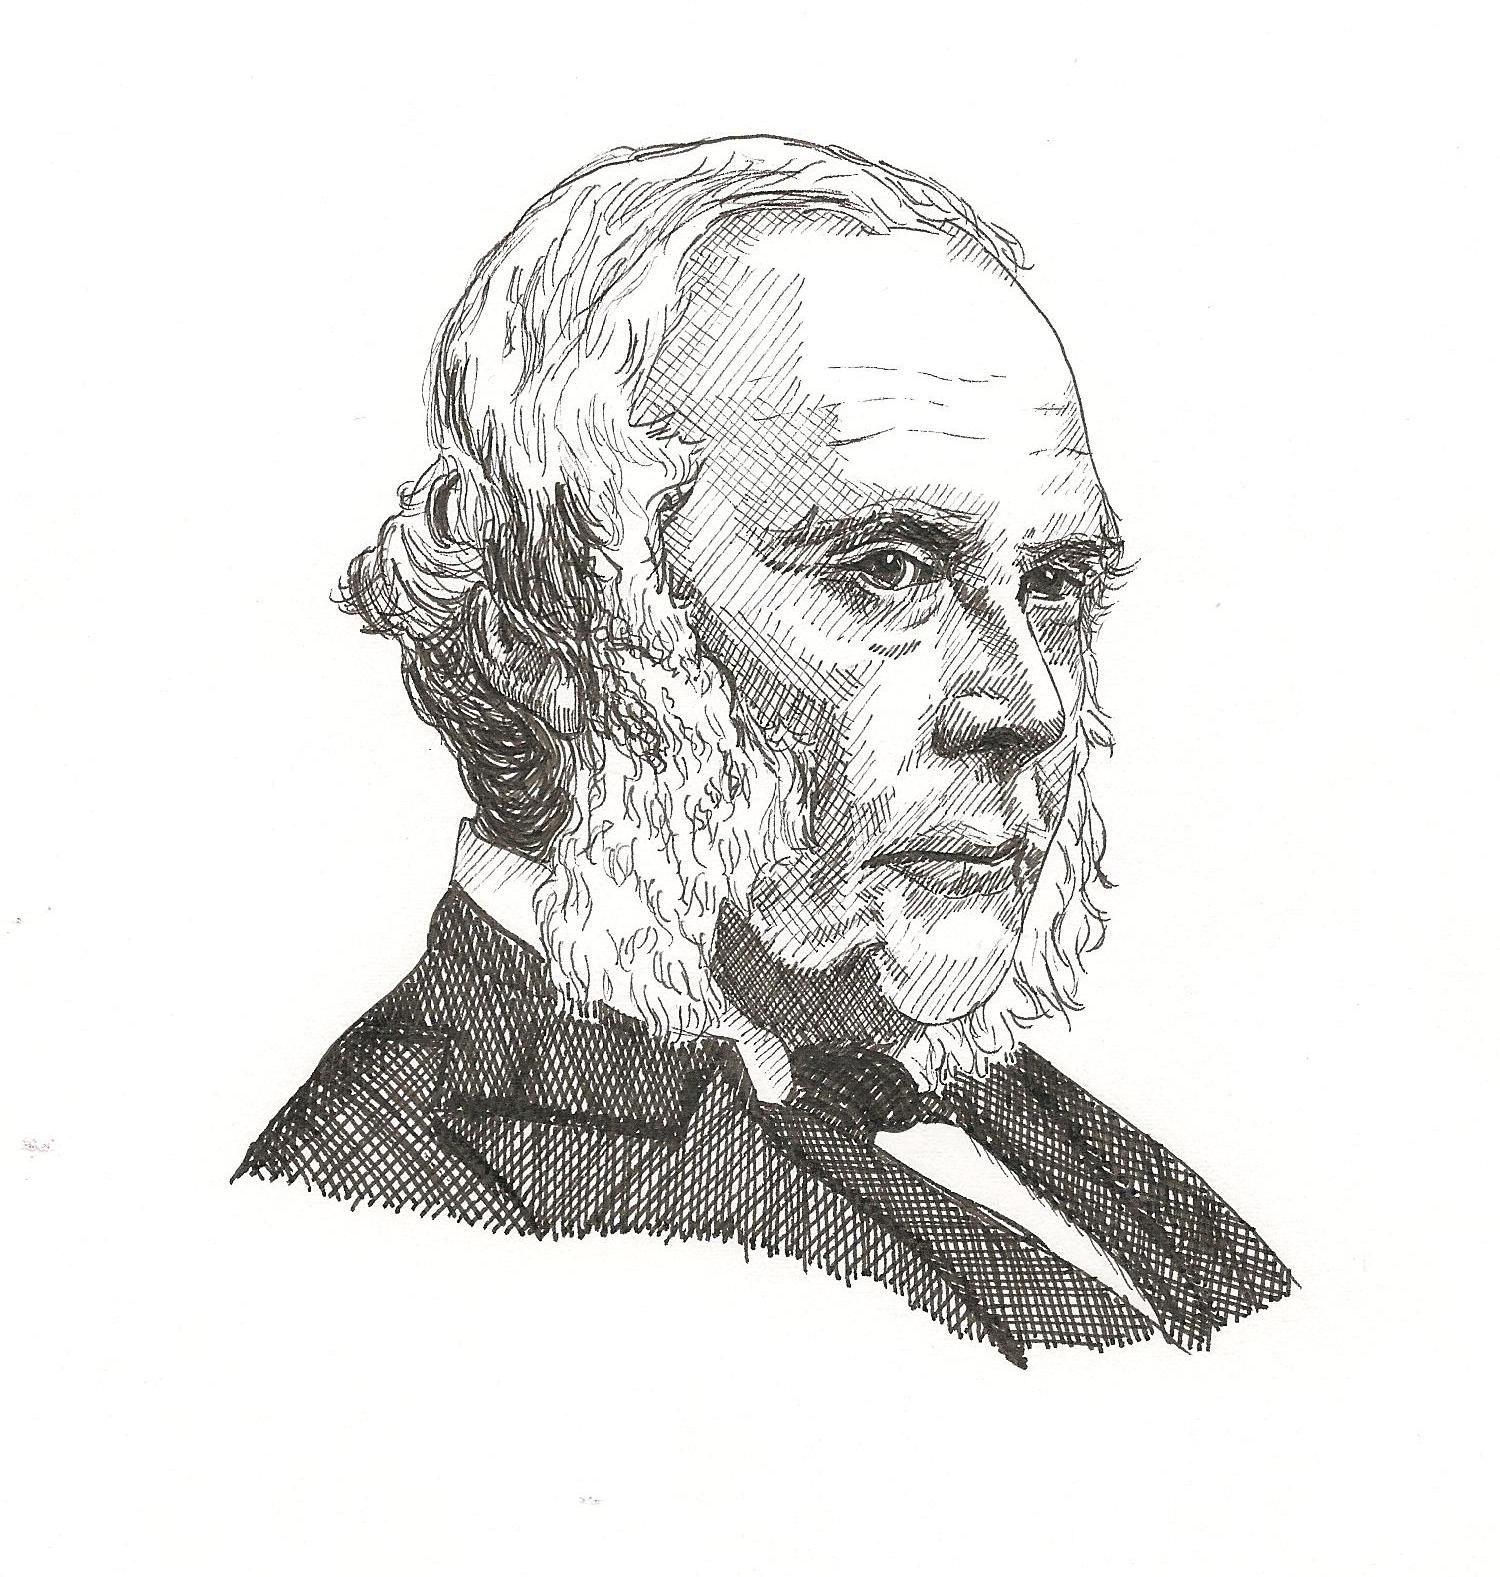 Amazing People Education invite students to meet Joseph Lister ~ one of the most highly regarded surgeons and medical researchers in history. His birthday is on April 5.